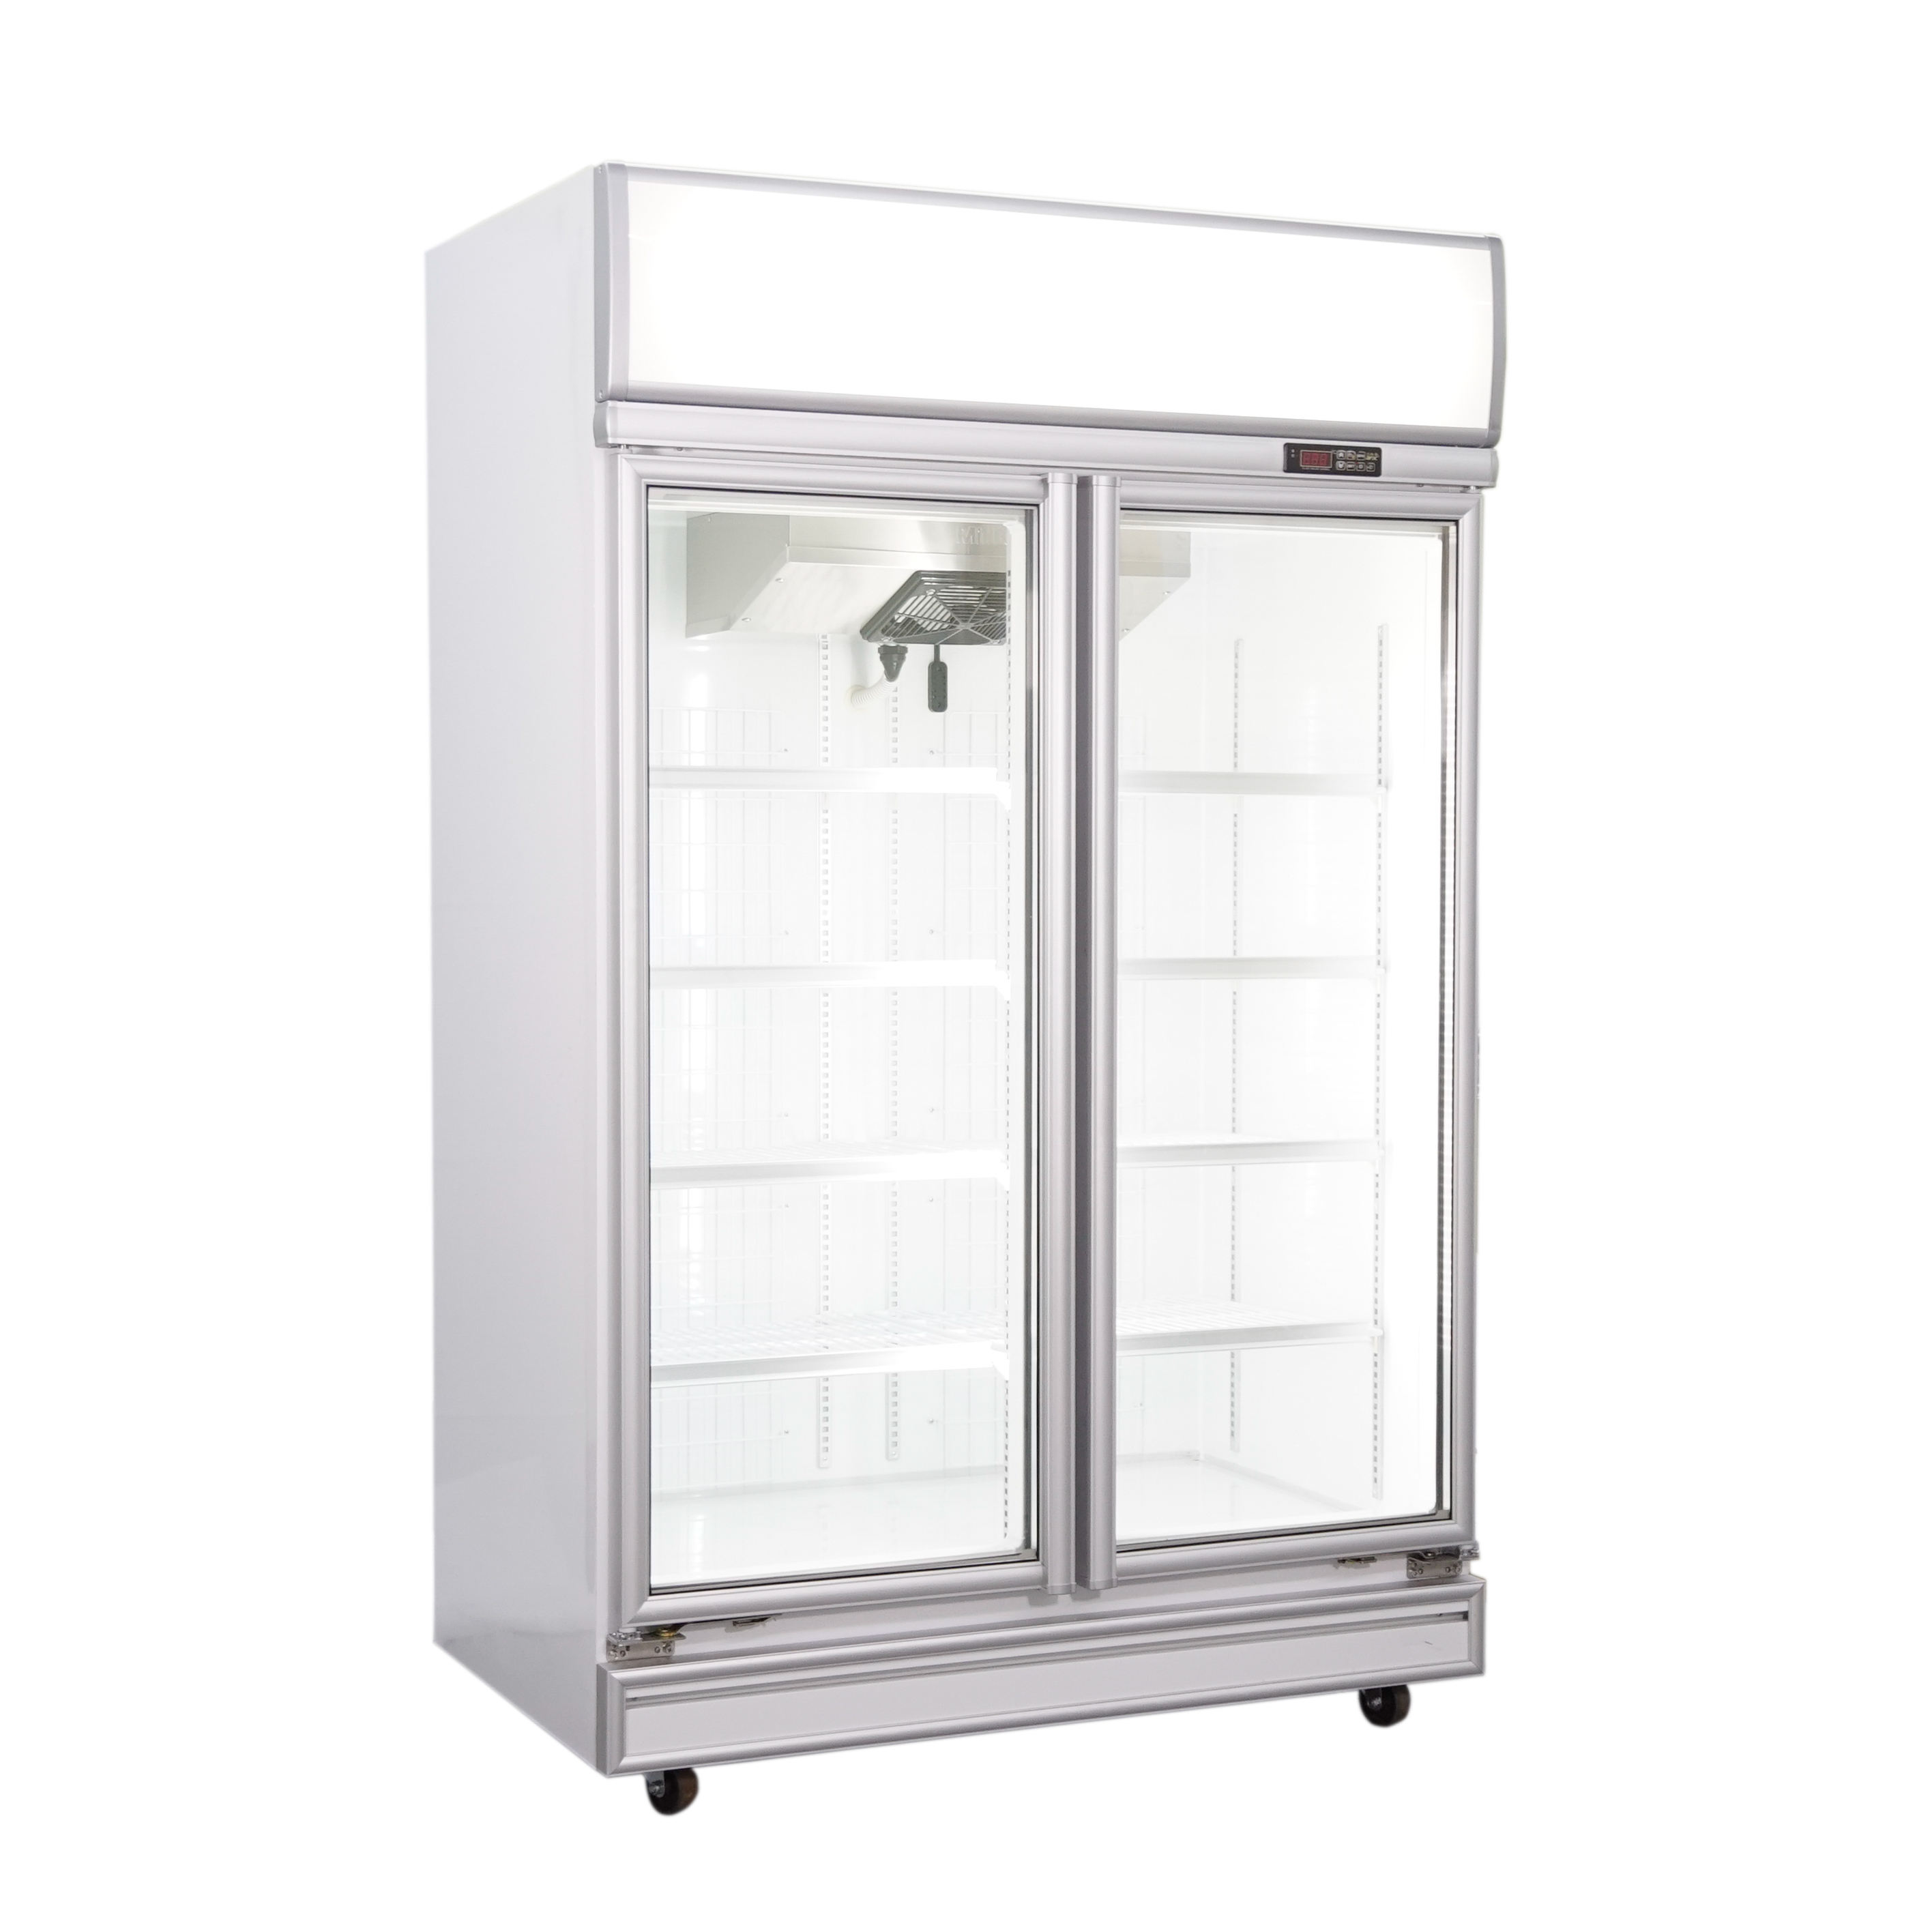 Supermarket 1050L upright 2 door glass freezer